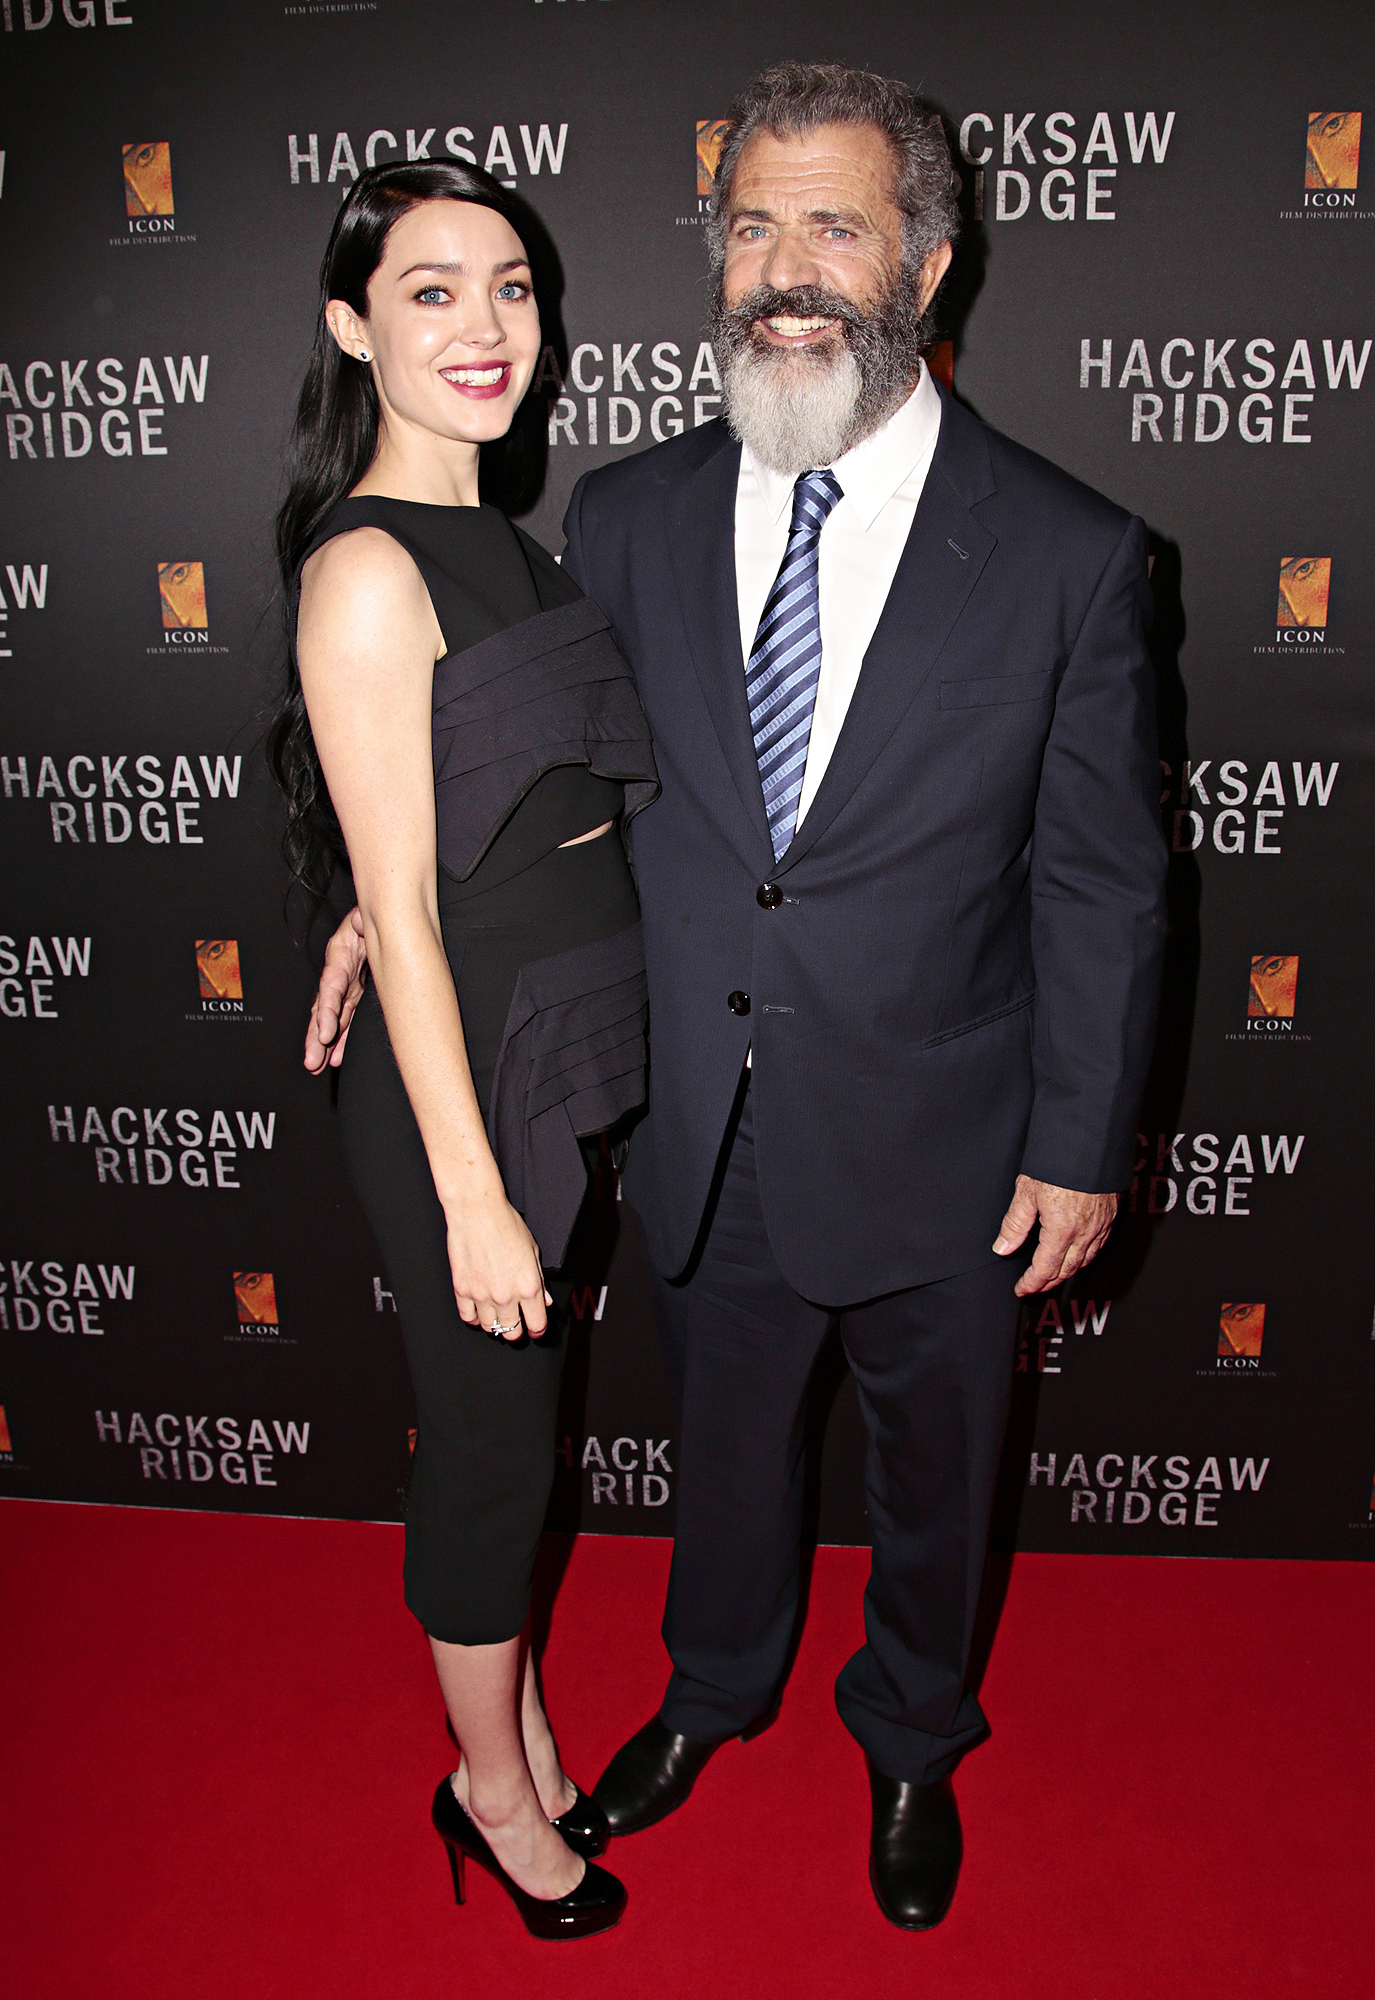 Editorial Use Only. Consent Required for Commercial Use and Book Publications Mandatory Credit: Photo by Adam Yip/Newspix/REX/Shutterstock (6334452r) Rosalind Ross and Mel Gibson 'Hacksaw Ridge' film premiere, Sydney, Australia - 16 Oct 2016